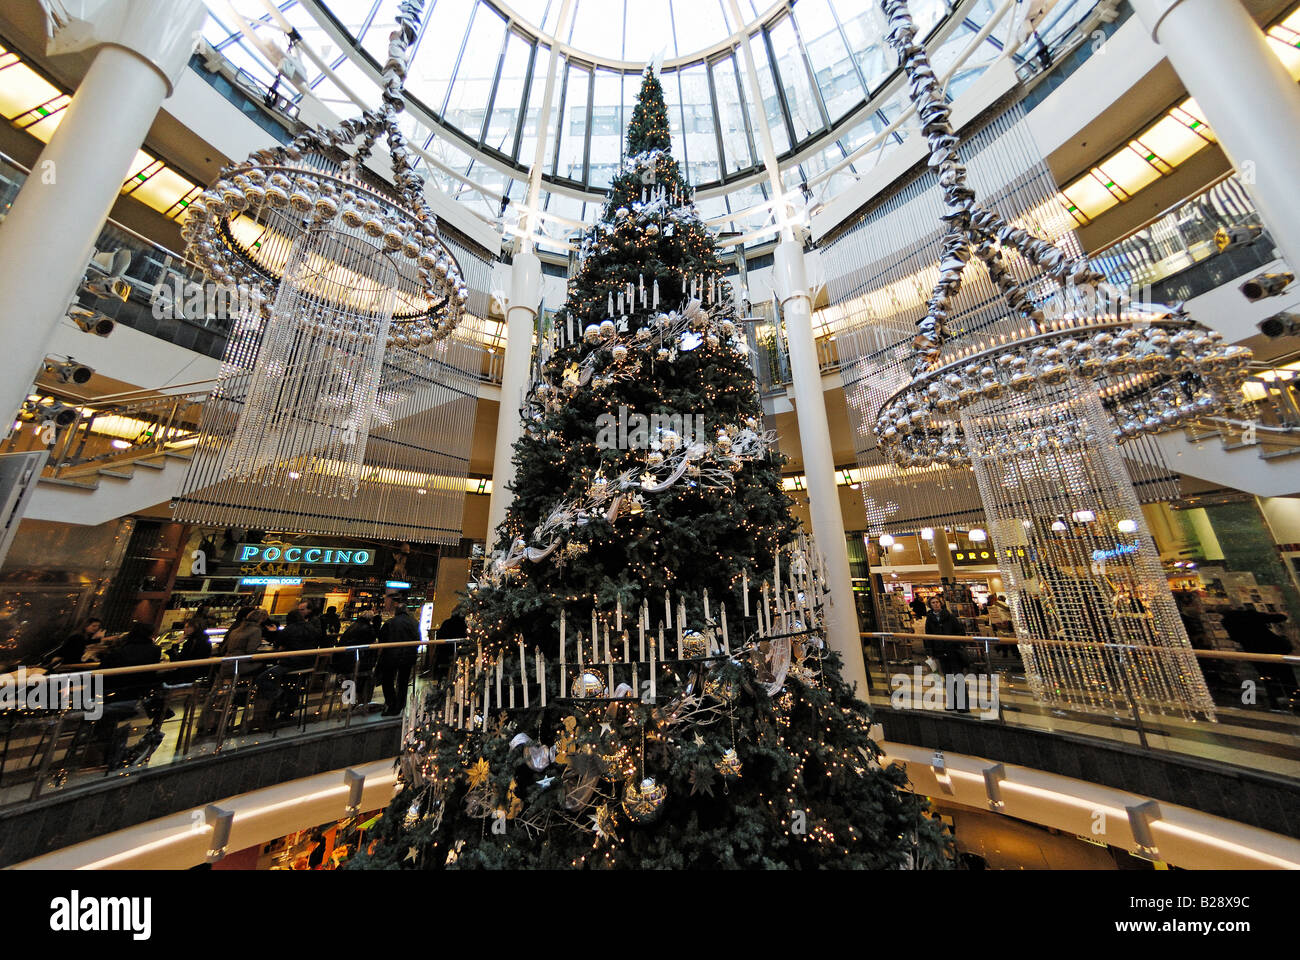 stock photo large christmas tree in shopping mall schadow arkaden in duesseldorf germany - Large Christmas Tree